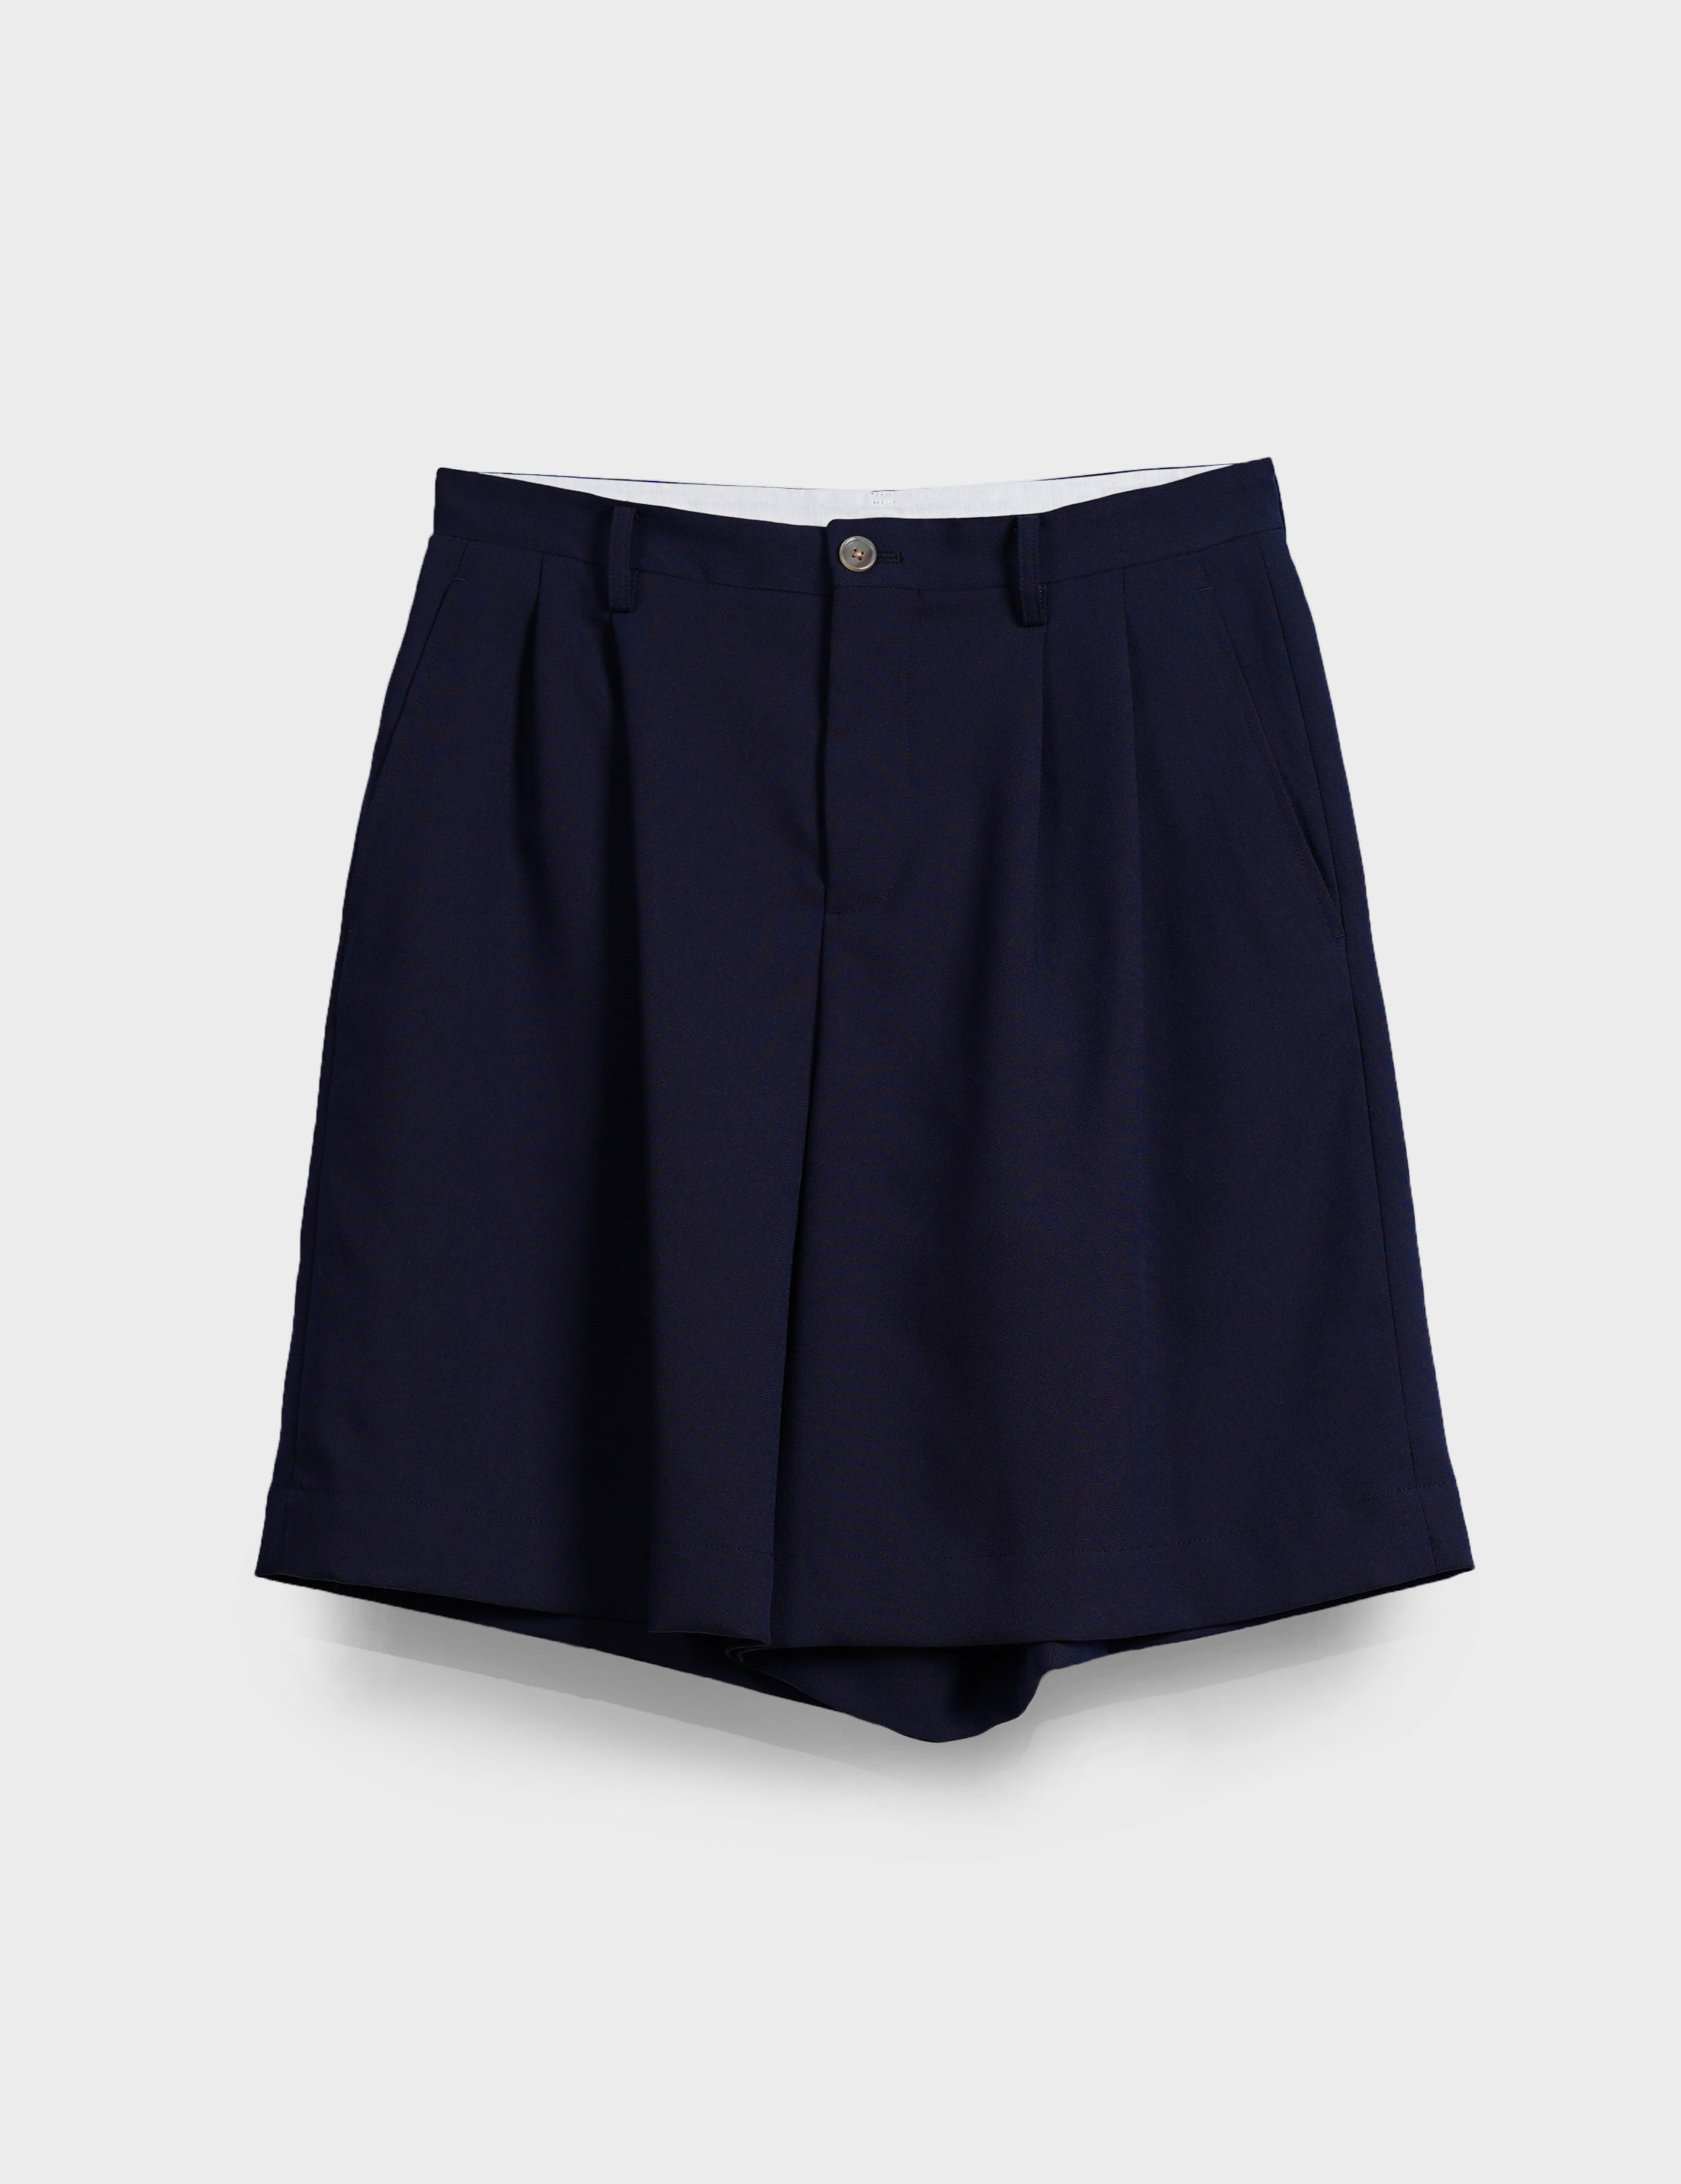 WIDE SHORTS (NAVY)